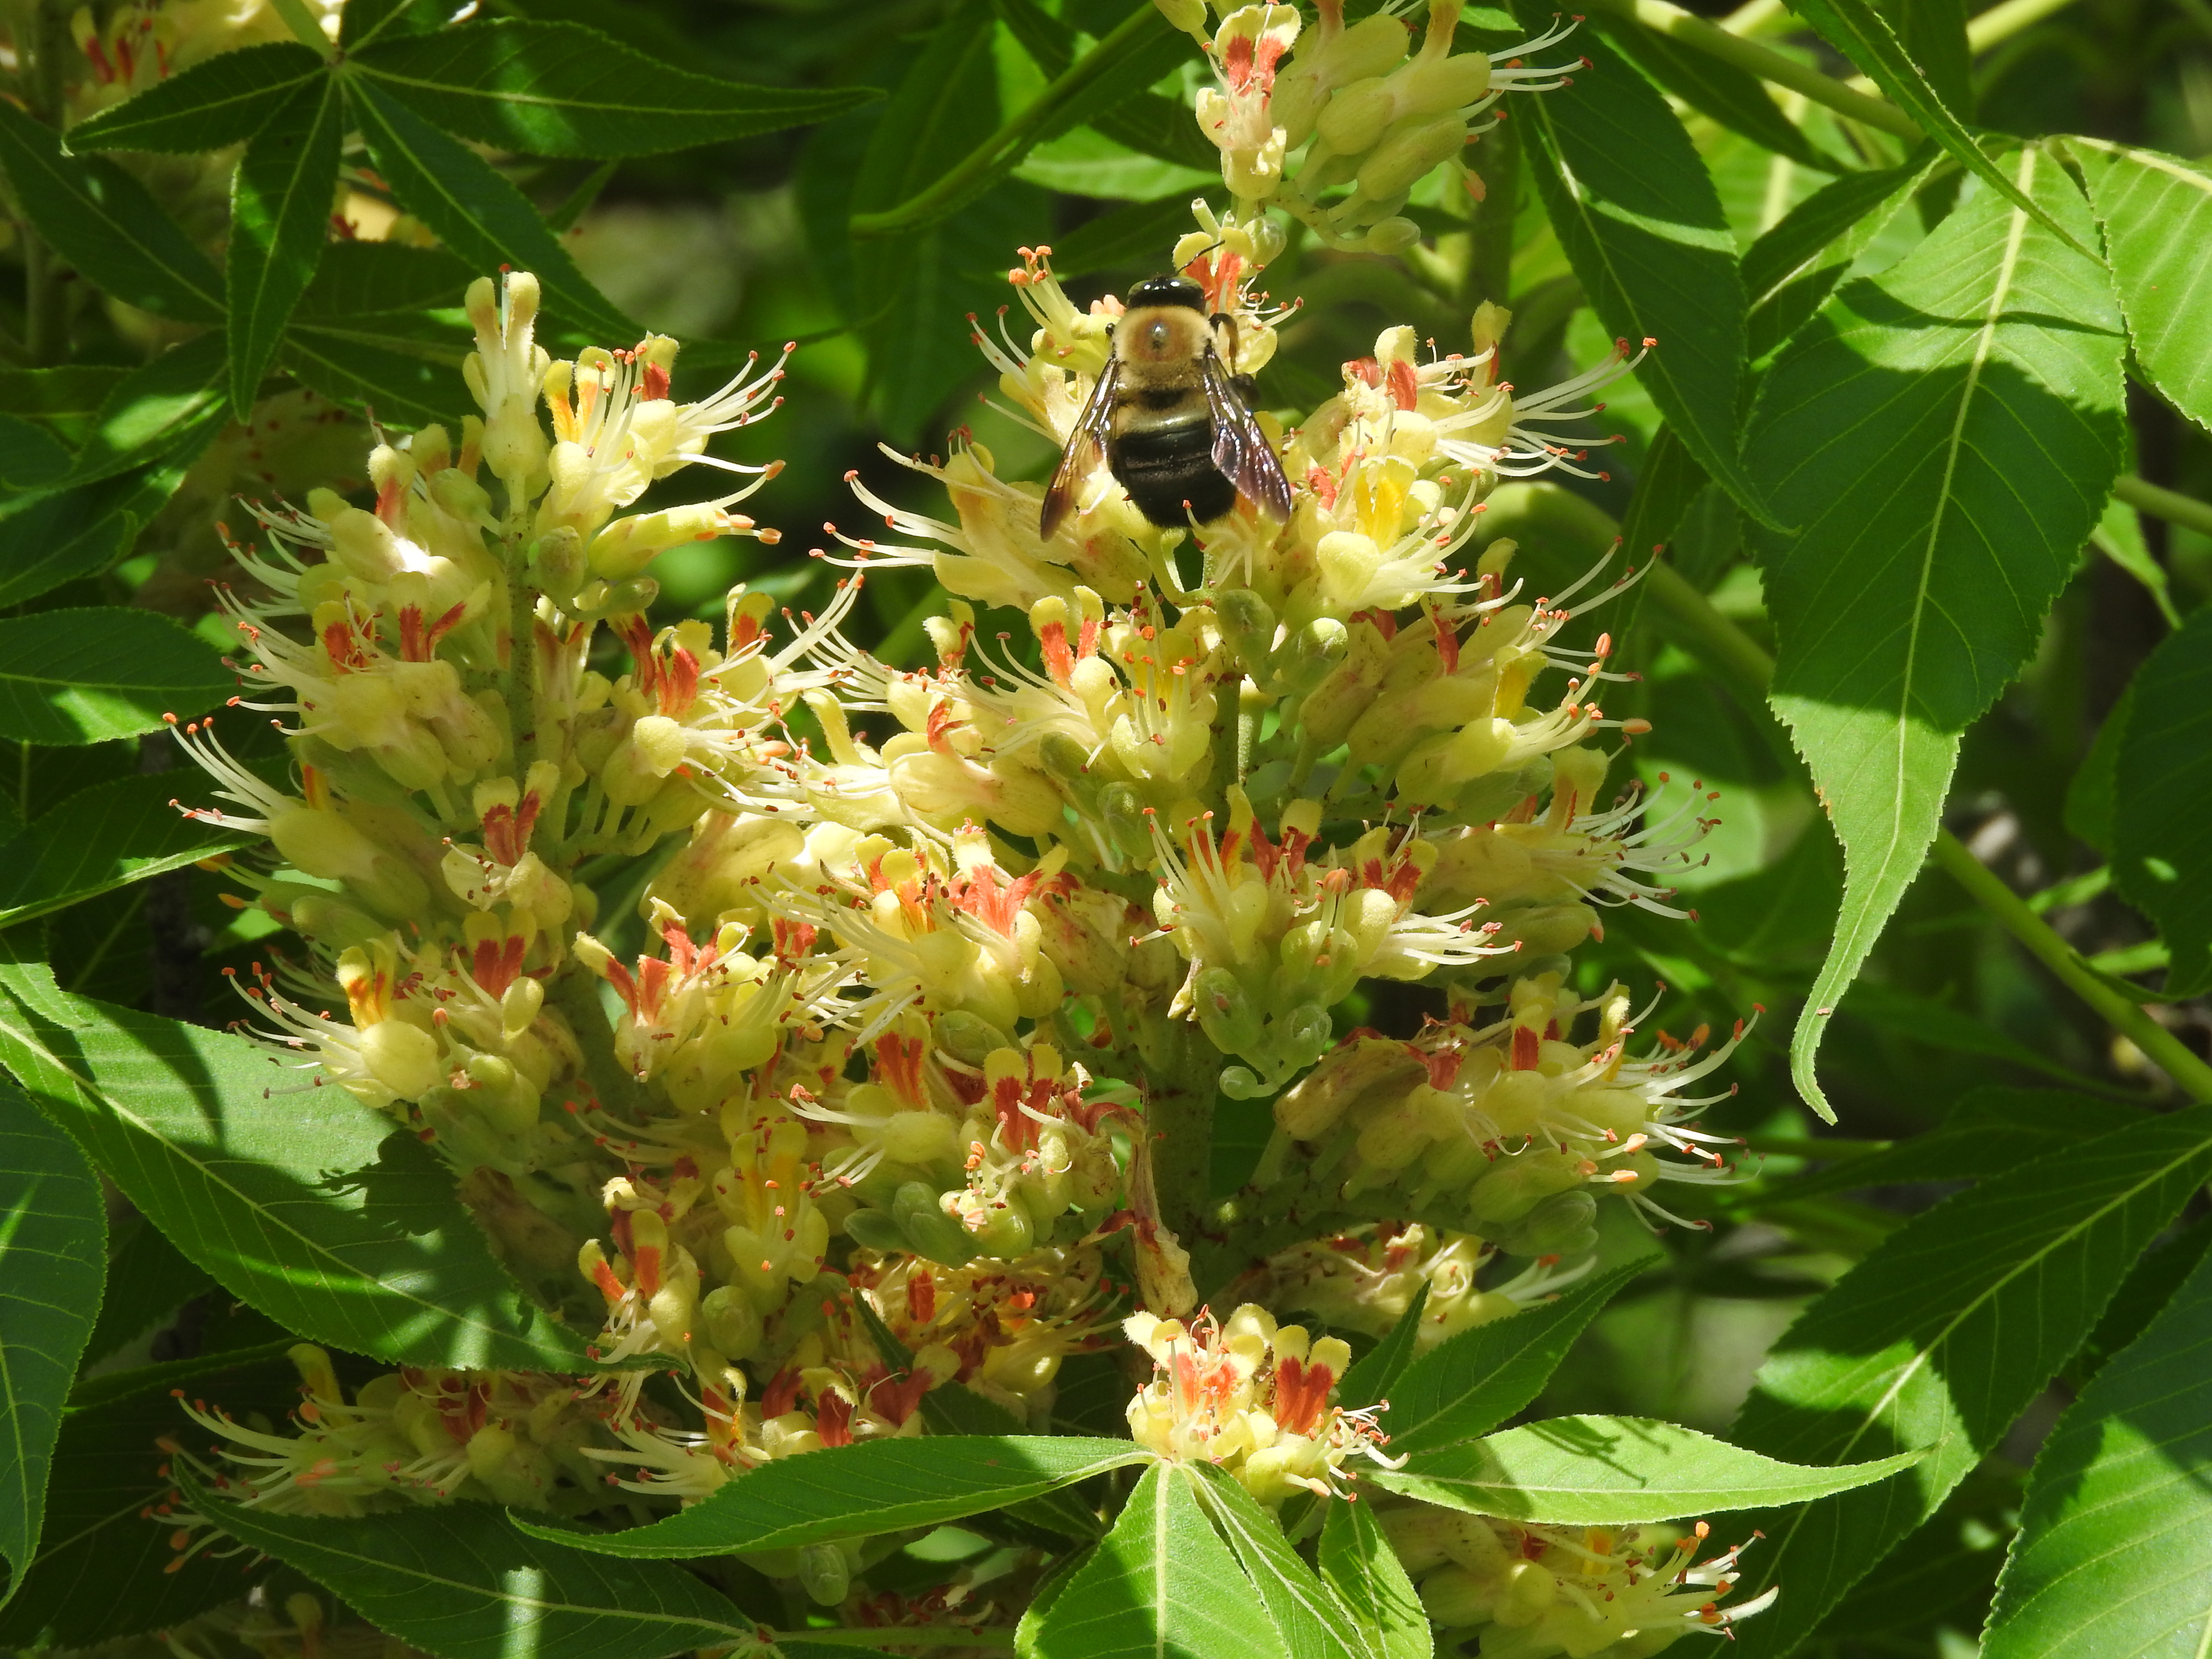 Flower of the Ohio Buckeye